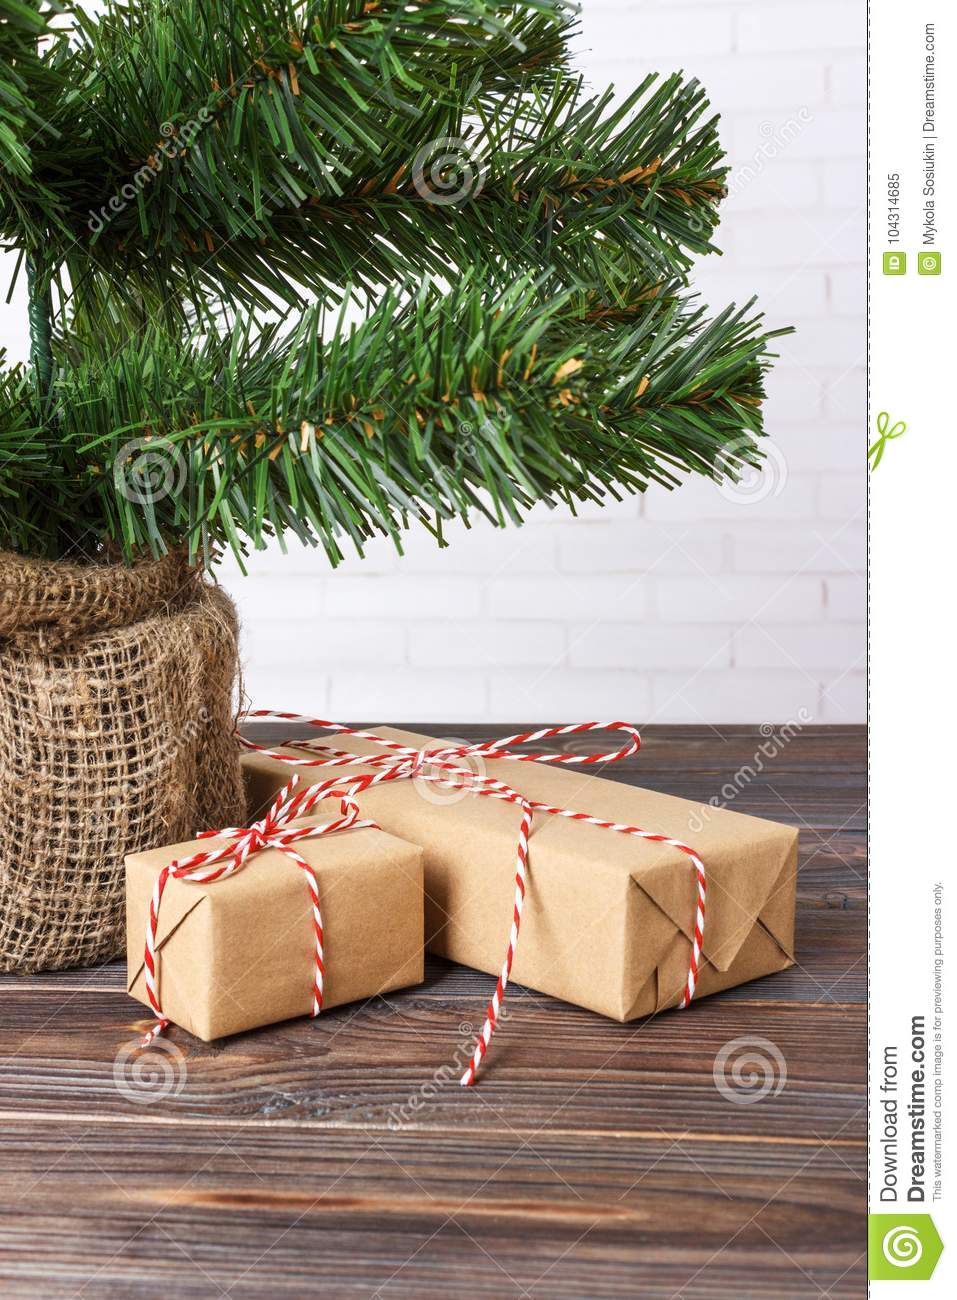 Beautiful Christmas Gifts Under Tree. New Year Gift Decorated Stock ...